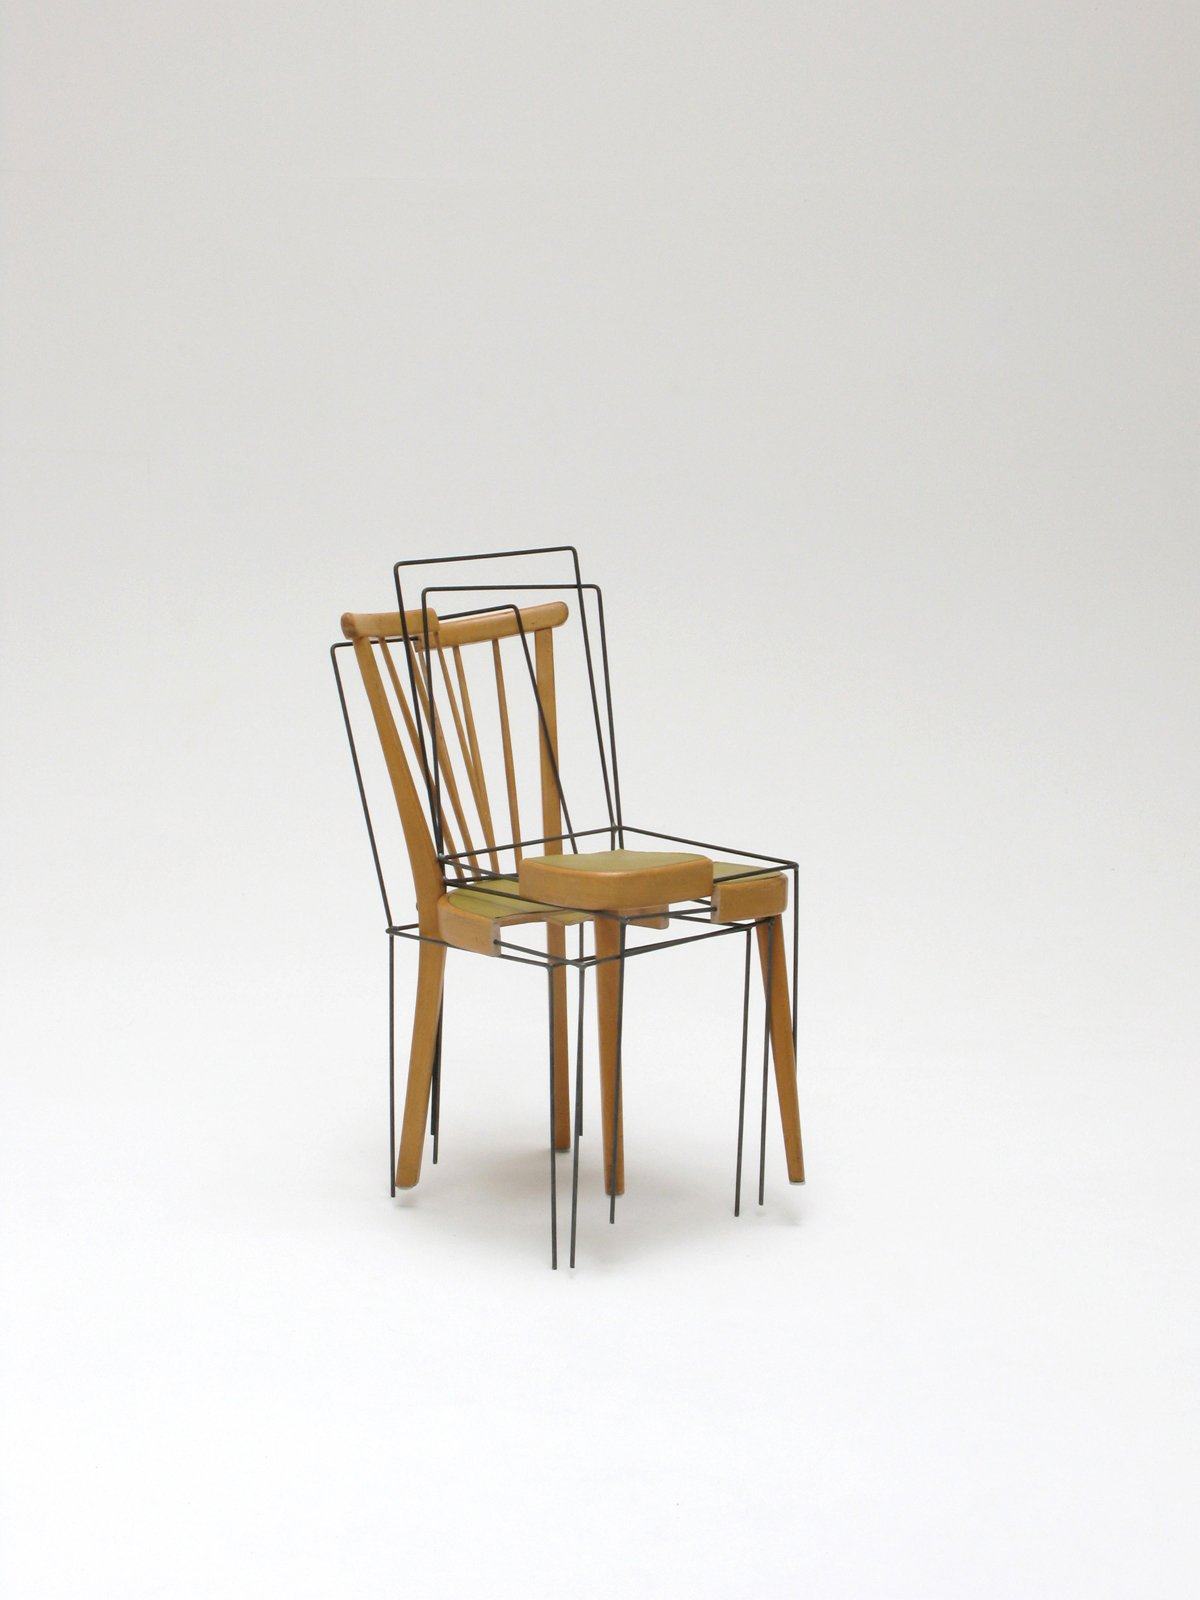 Platzhalter-Stuhl by German designer Julian Sterz is another rumination on object and perception—one conventional chair becomes four new, different chairs, each with a missing part replaced with a metal frame.  Emerging Design Talent at imm Cologne by Amanda Dameron